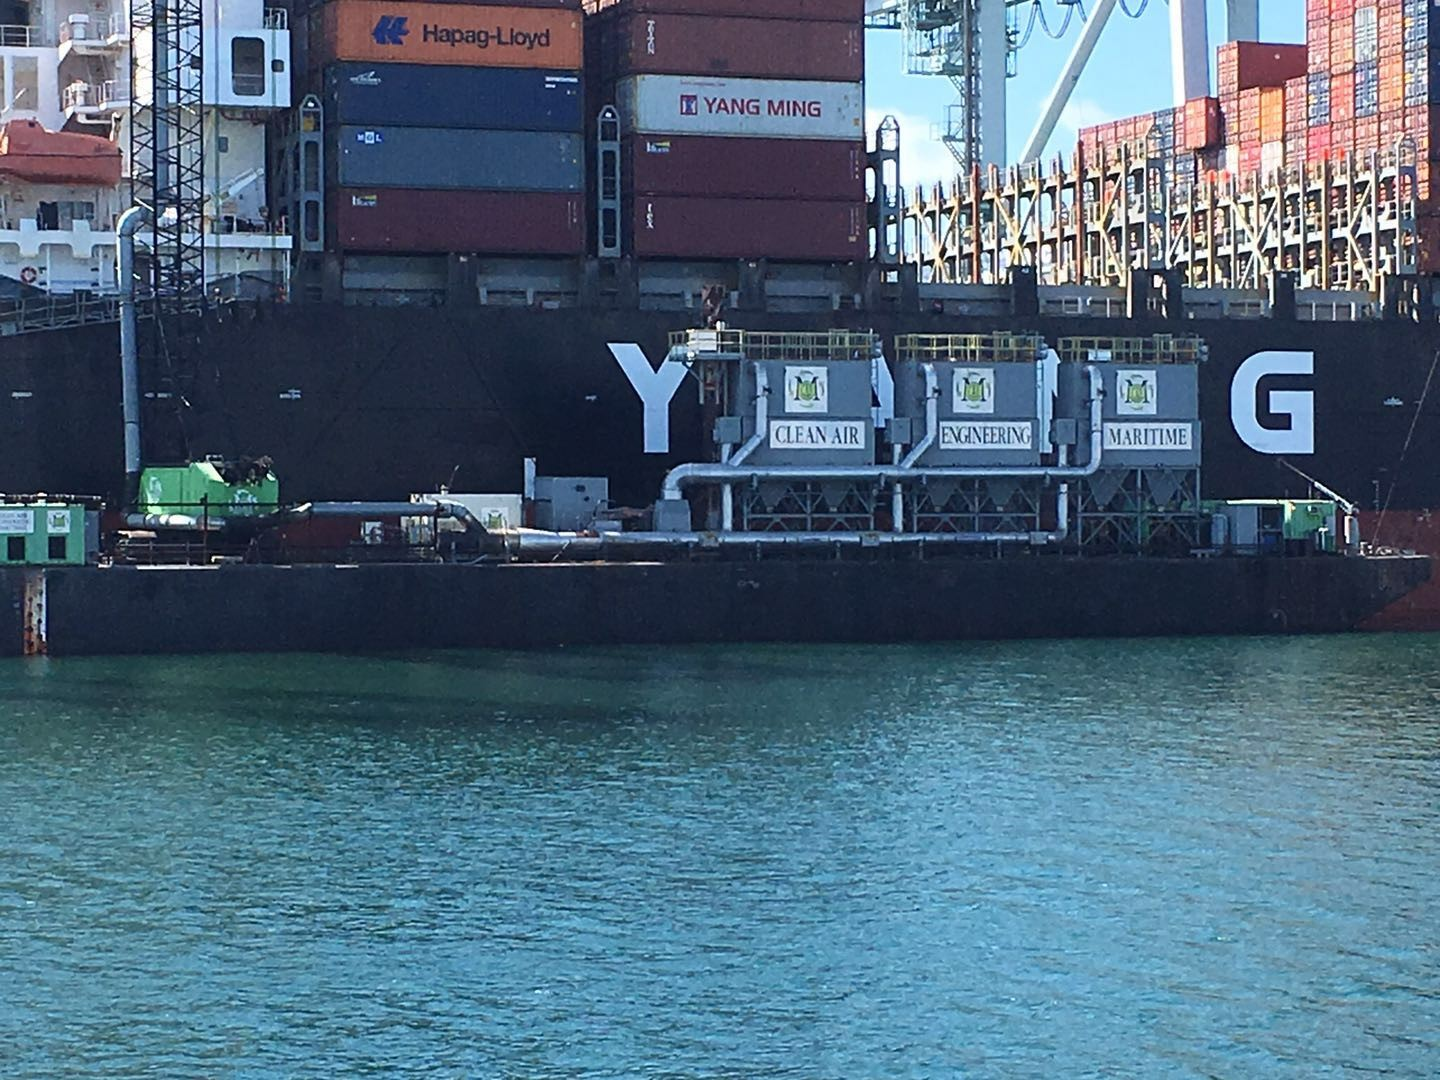 A cargo ship docked in the Port, powered by Alternative Maritime Power.